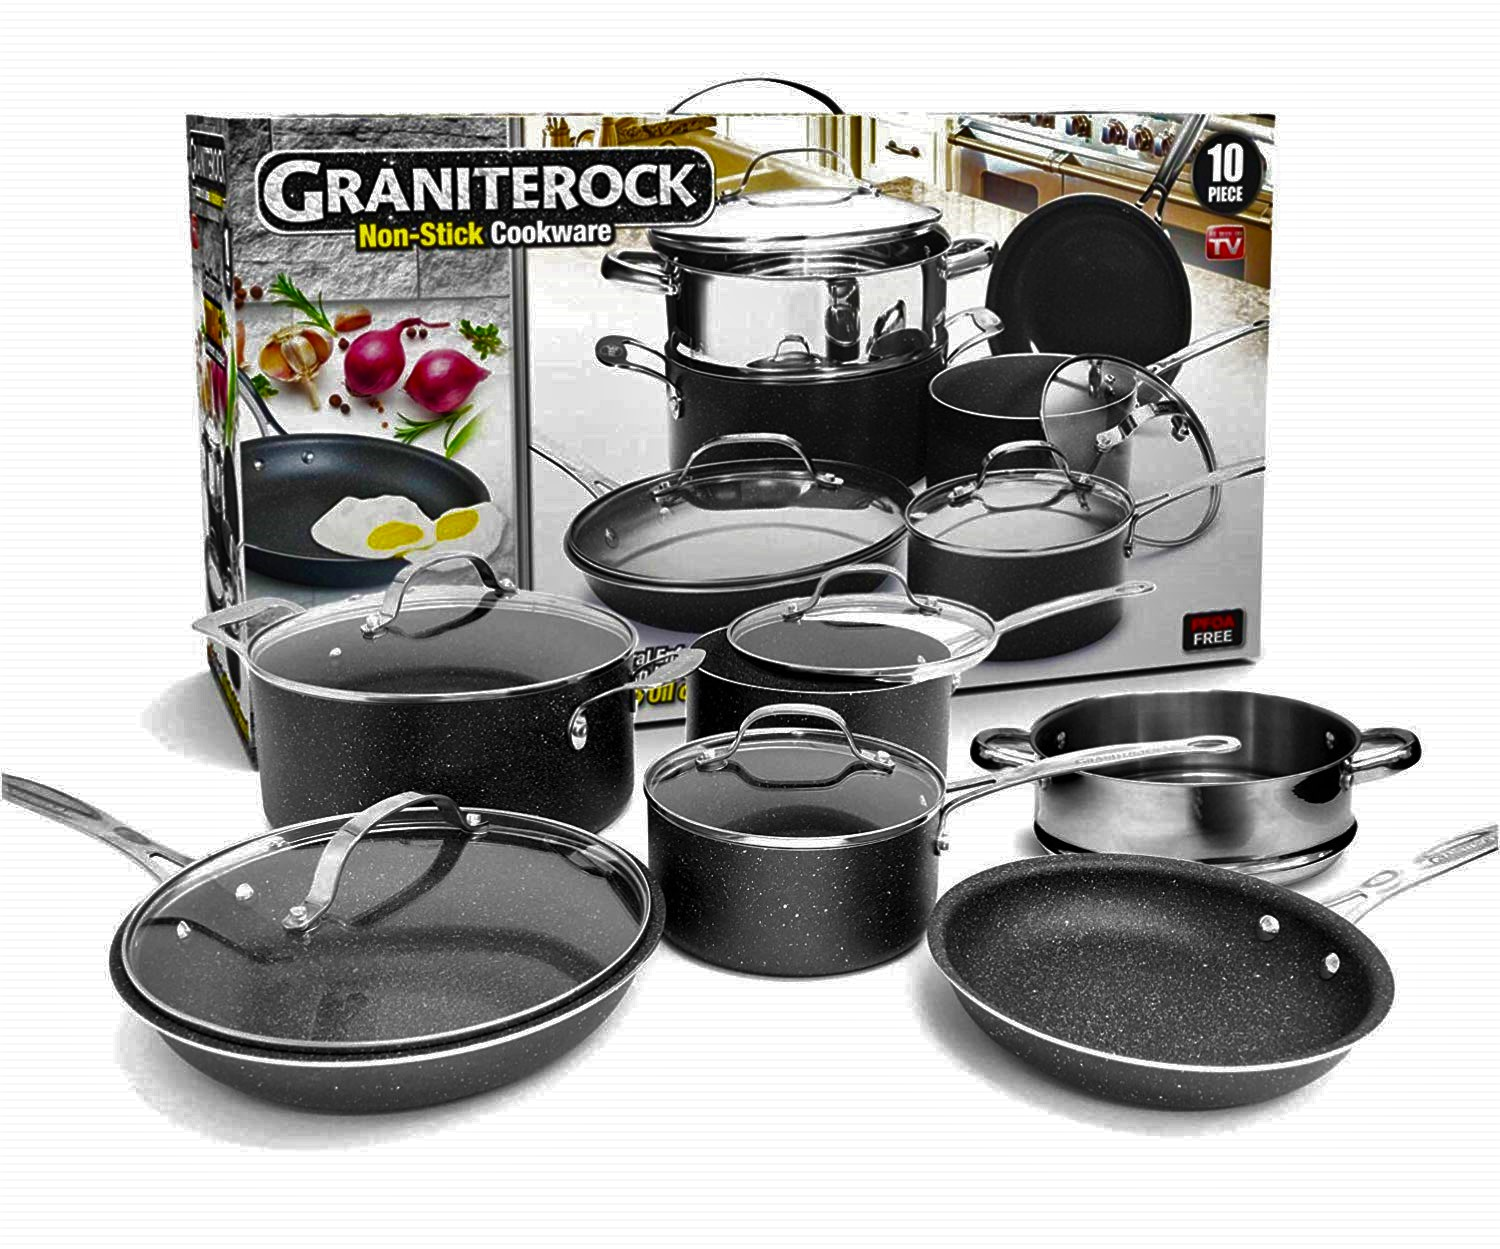 GraniteRock 10-Piece Non-Stick Ultra Durable, Mineral & Granite Coated Scratch Proof Cookware Set by E. Mishan & Sons